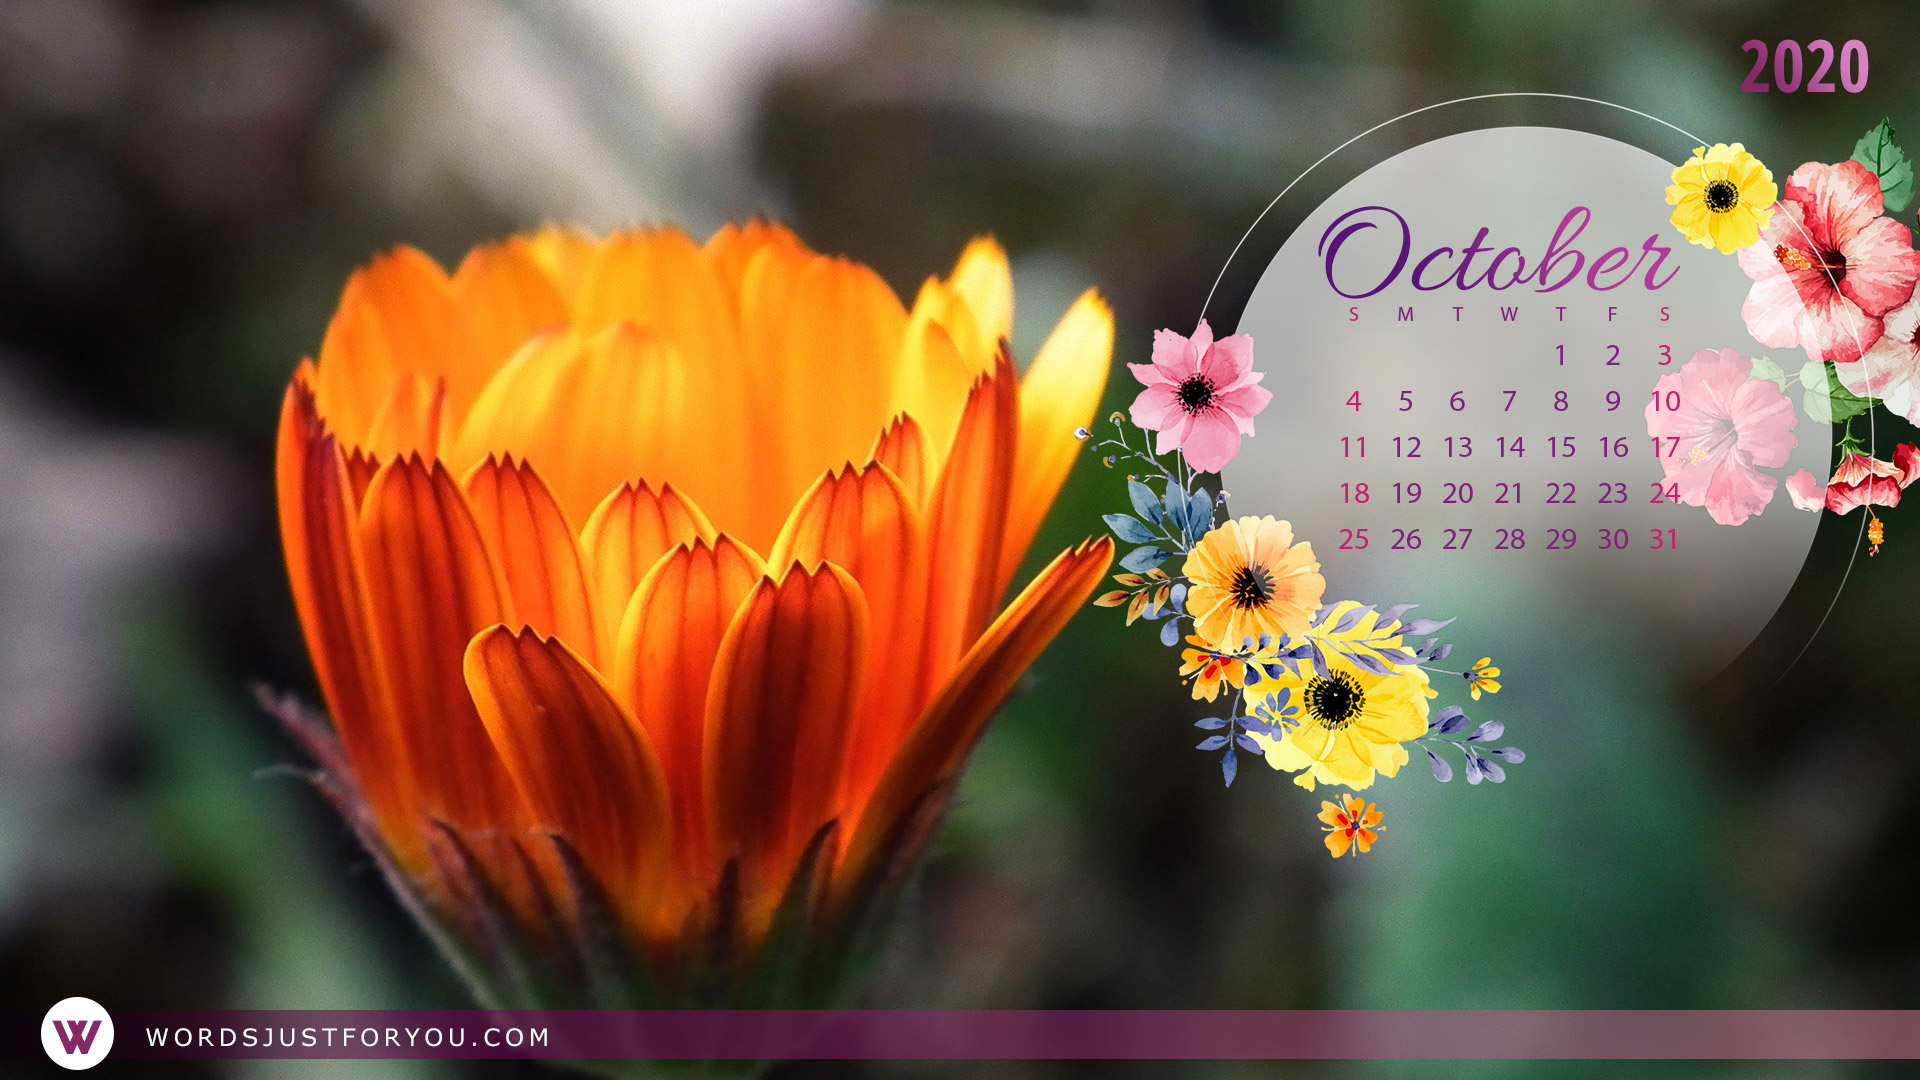 5x HD October 2020 Calendar Wallpaper 6580 Words Just for You 1920x1080